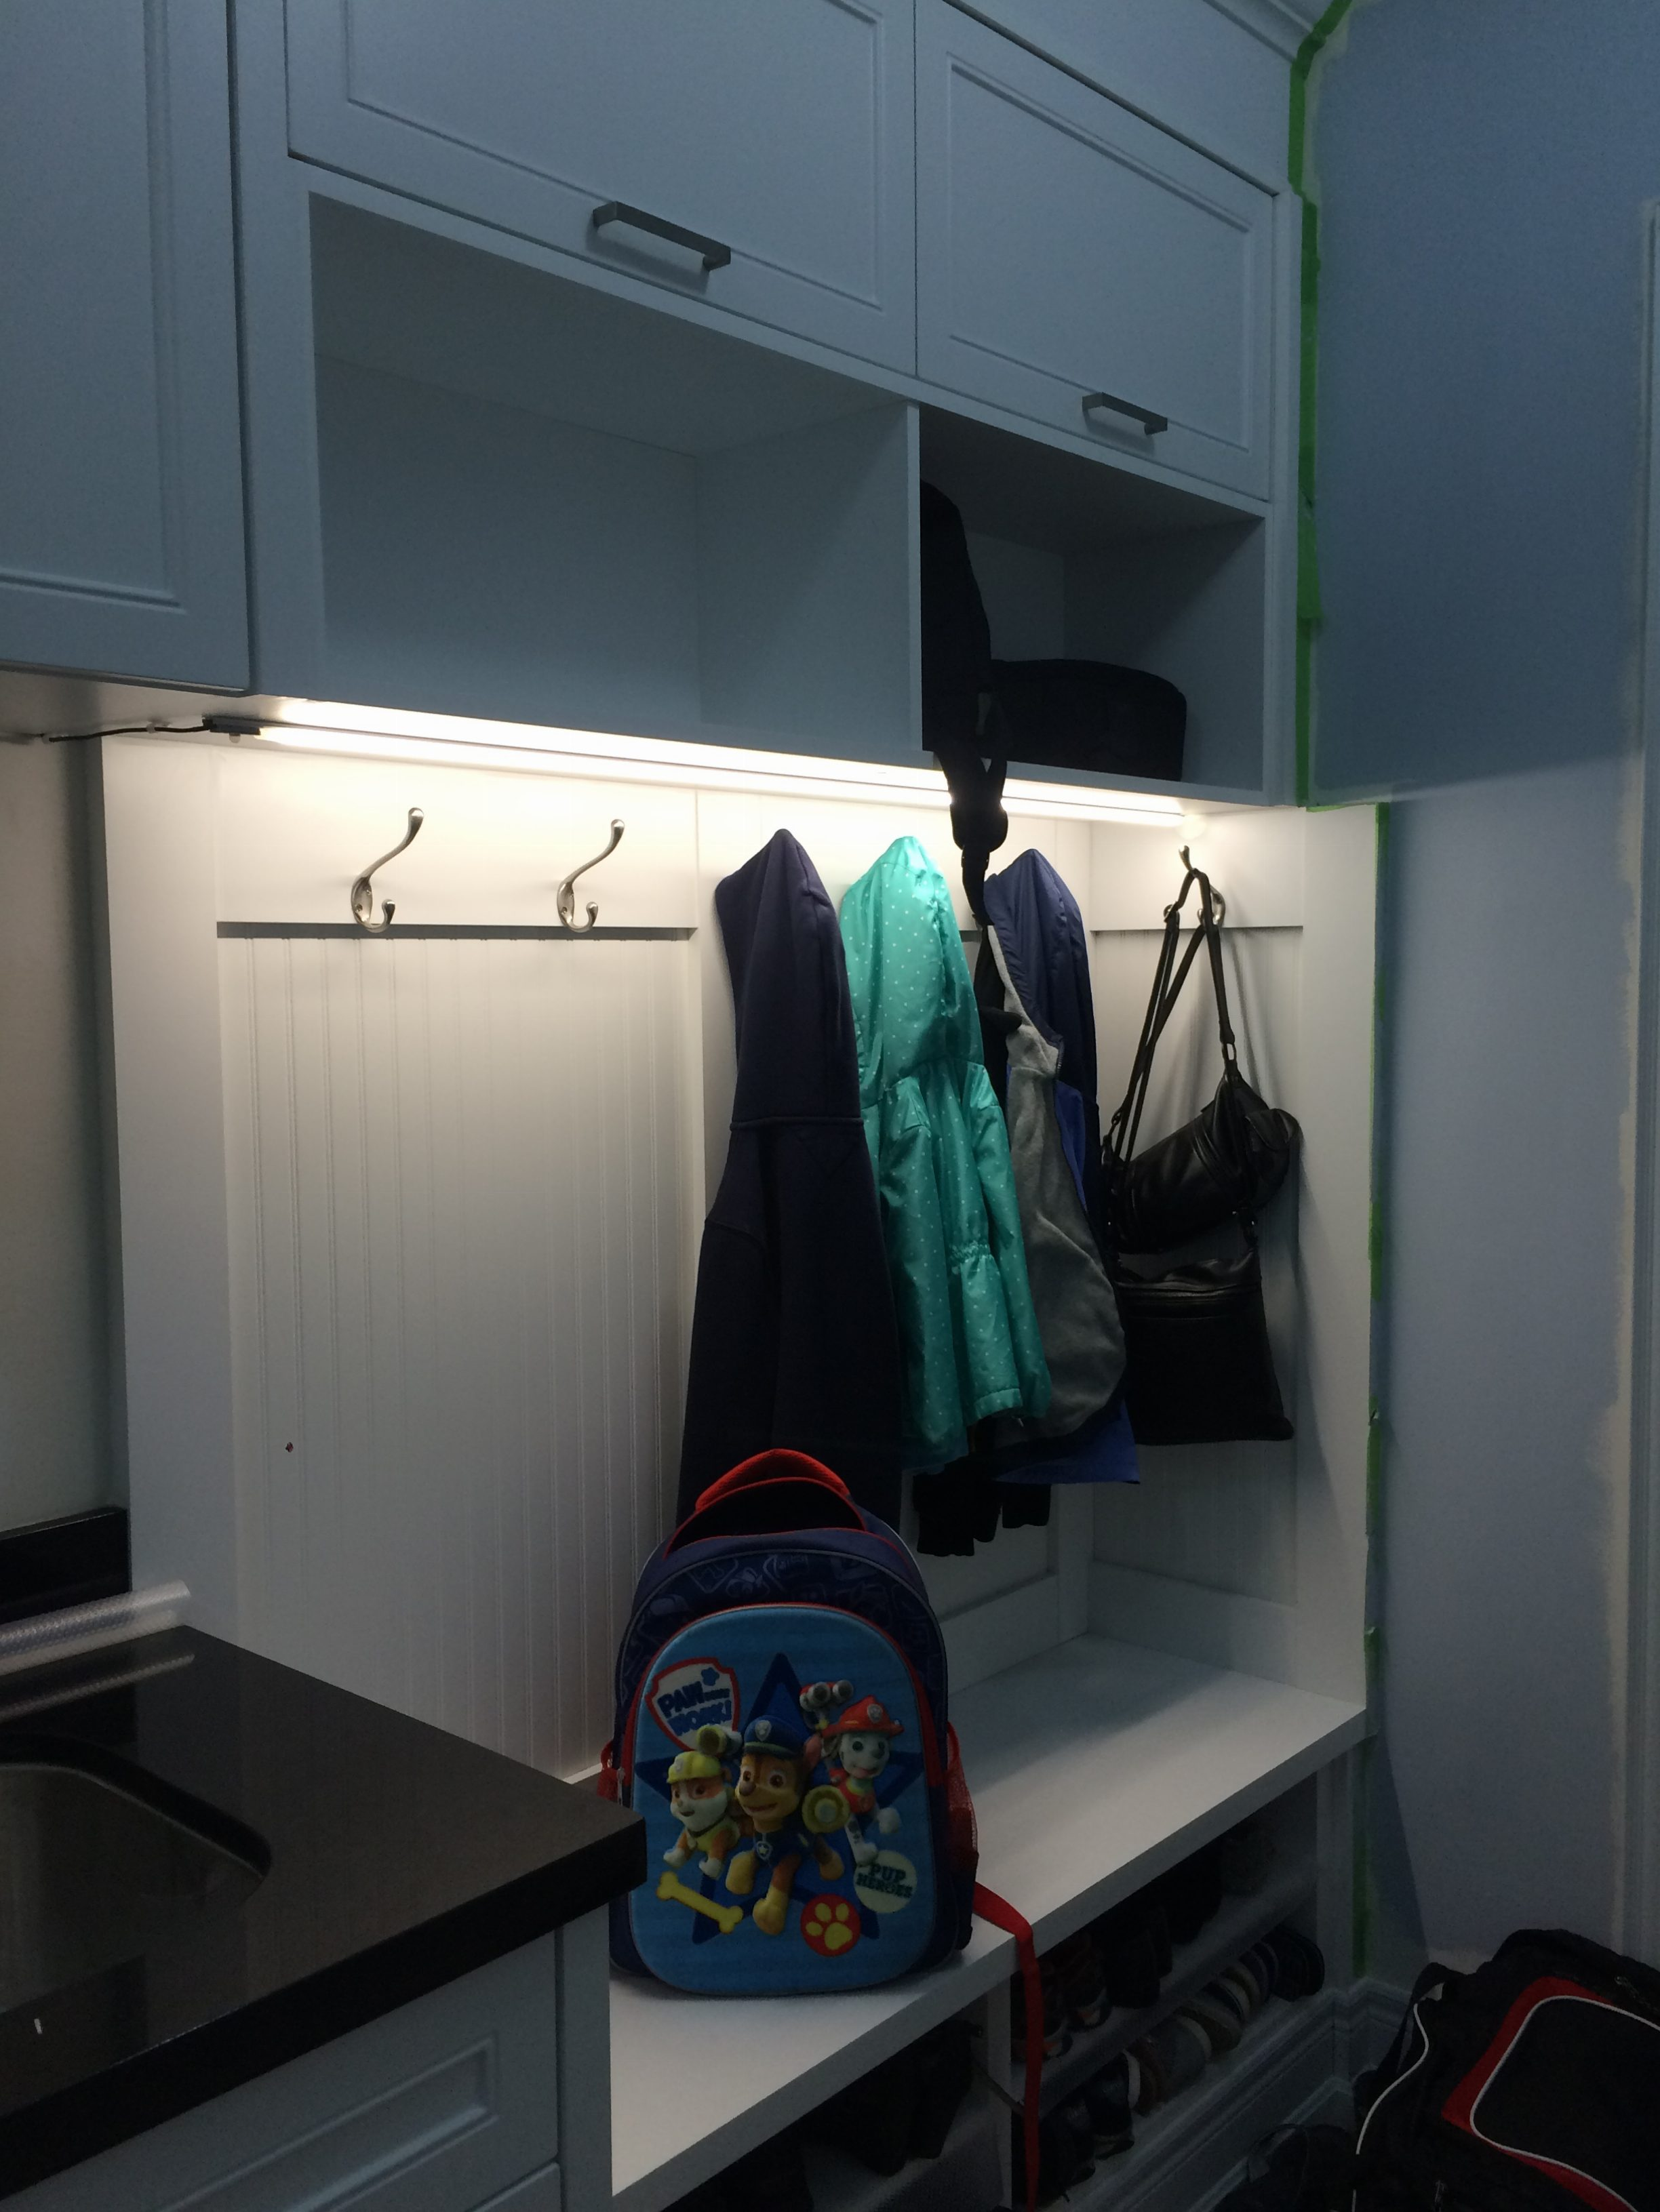 Laundry room picture 7